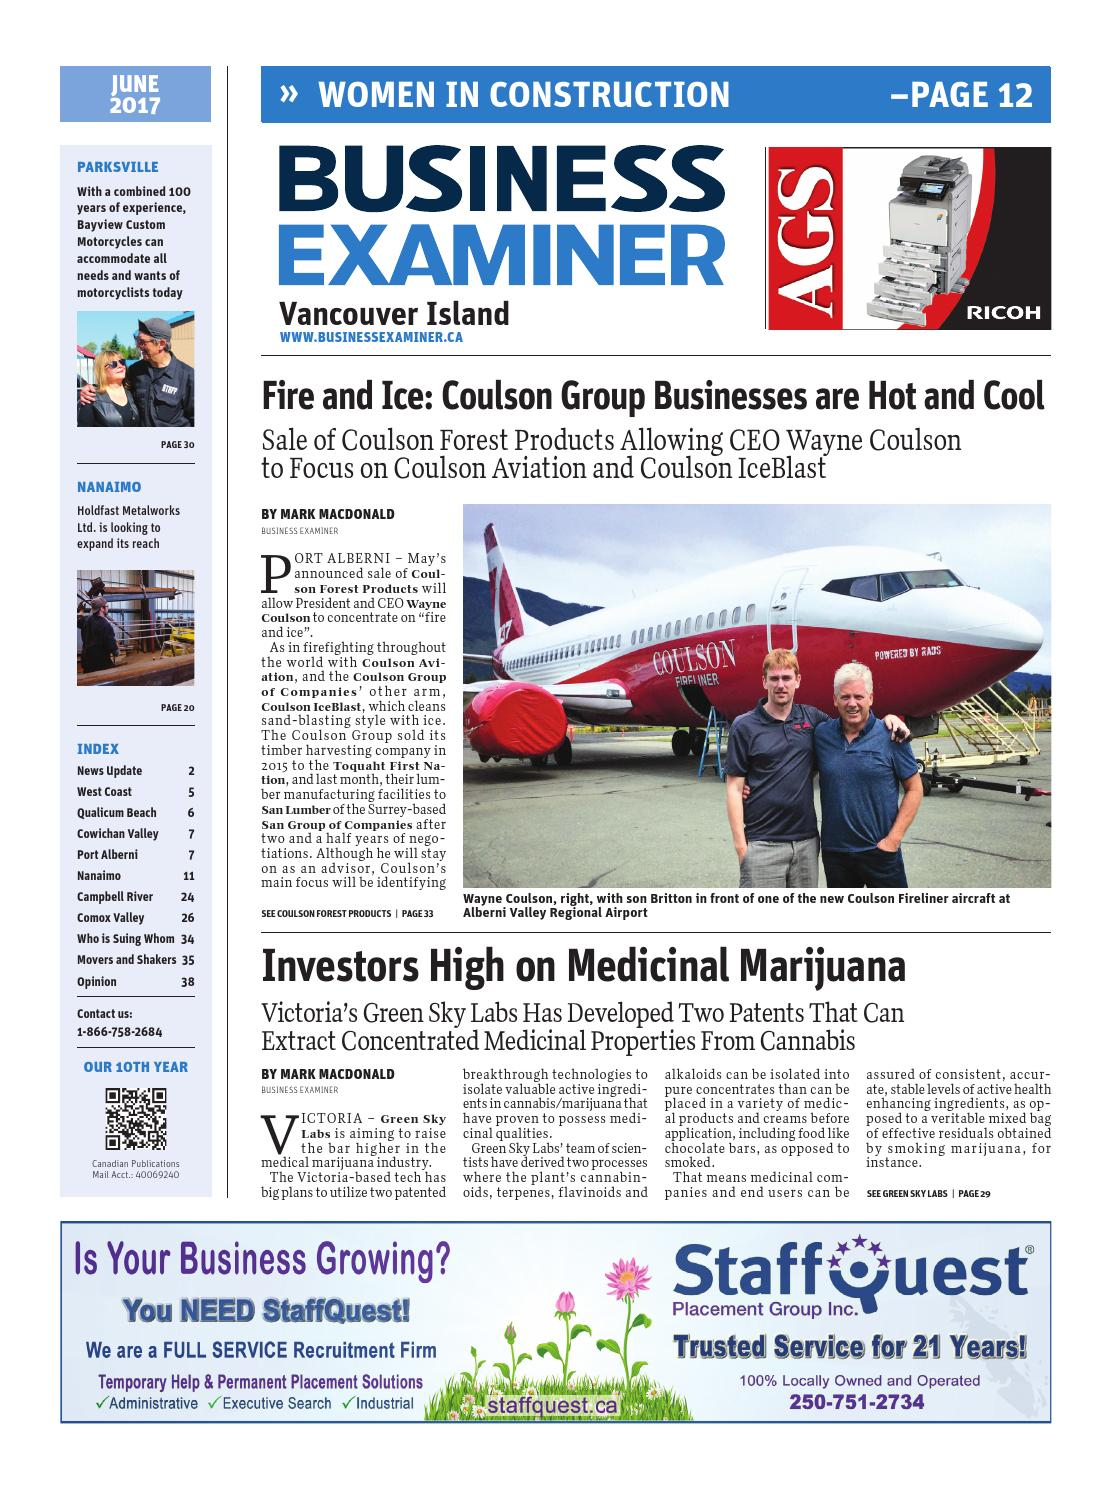 Business Examiner Vancouver Island